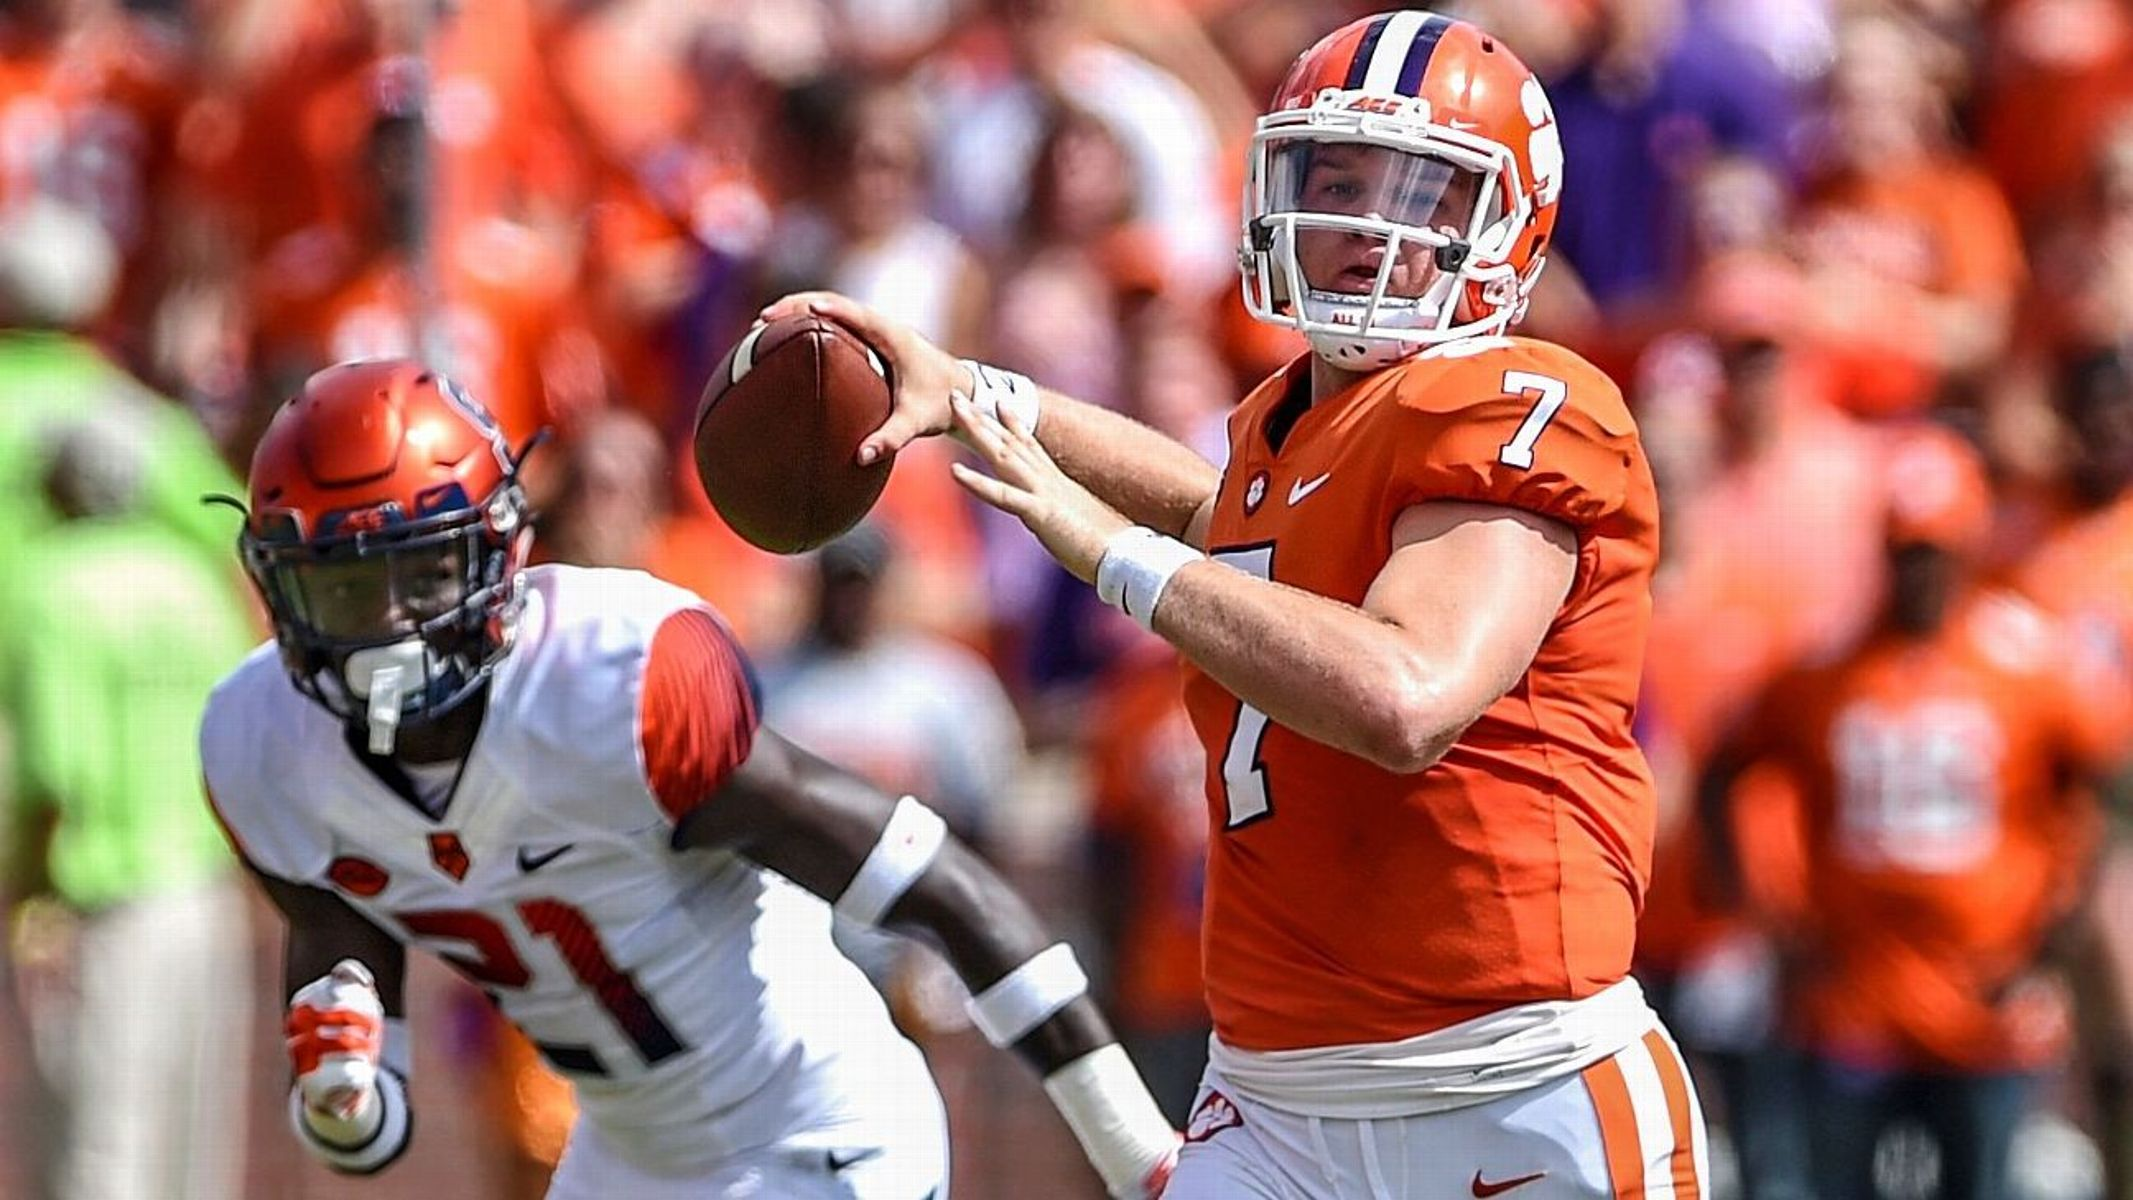 Ex-Clemson backup QB Brice transfers to Duke